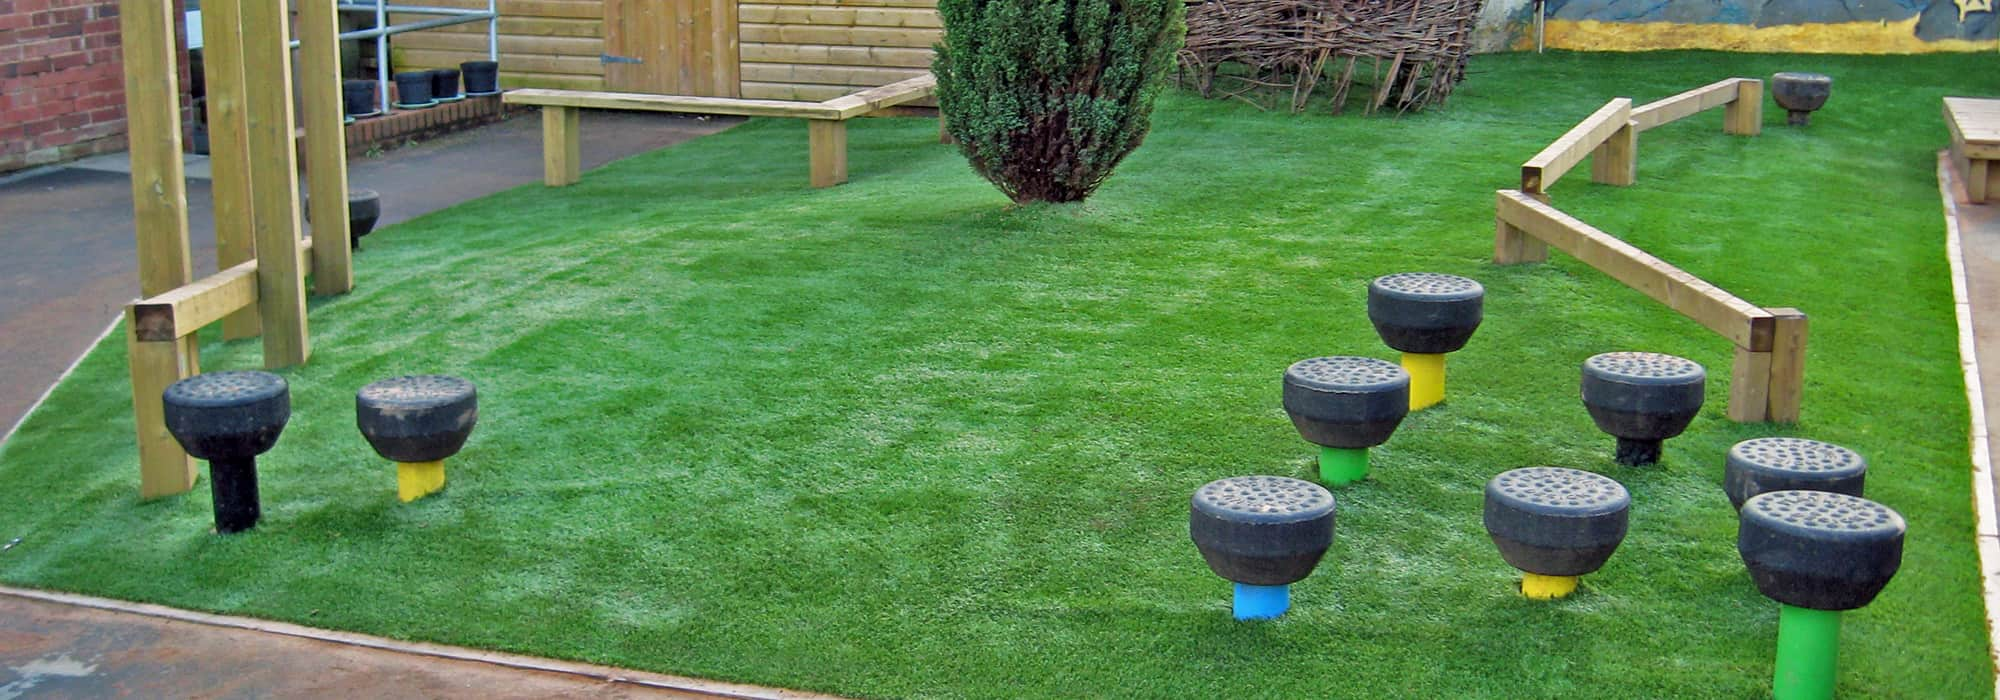 Artificial grass - 4